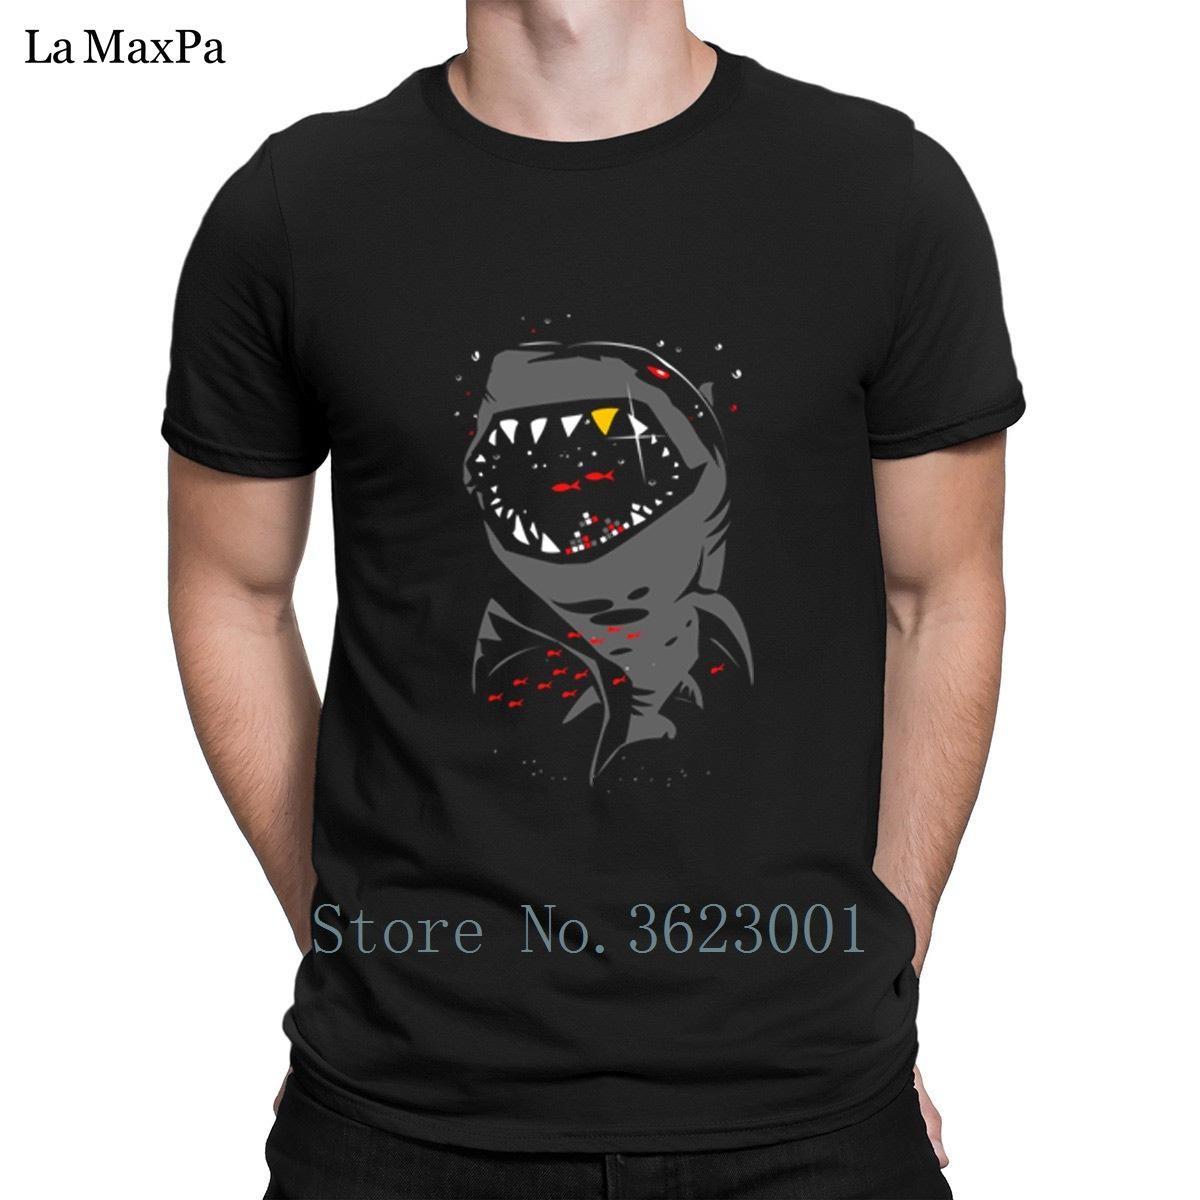 c1342327 Breathable T Shirt For Men Limited Edition Shark With Pixelated Teeth  Original Tee Shirt Funky Men T Shirt Cotton Simple Graphic Tee Shirts Mens  T Shirts ...